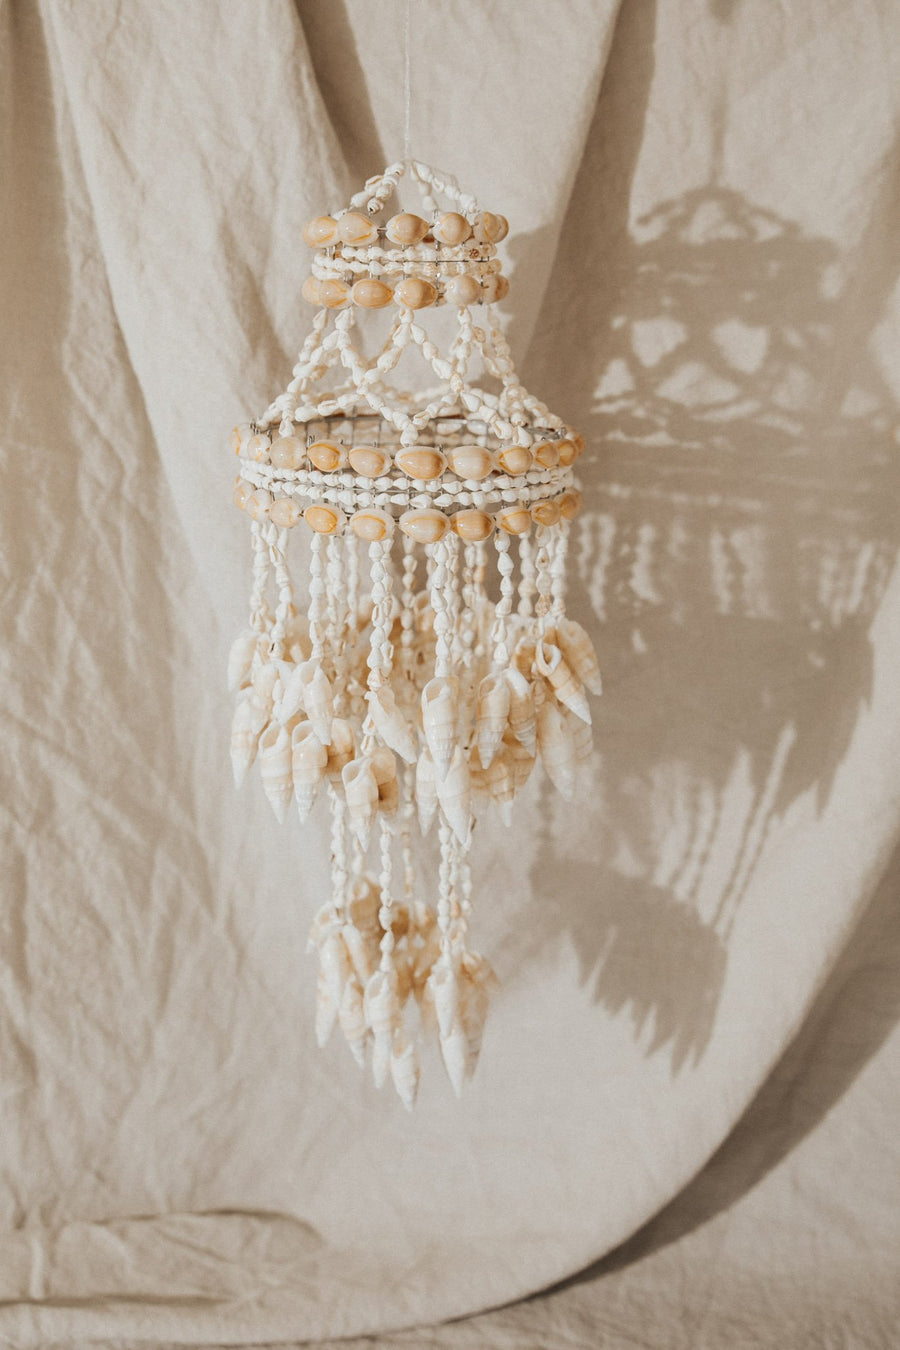 Atlantic Coral Enterprise Objects Santiago Seashell Chandelier